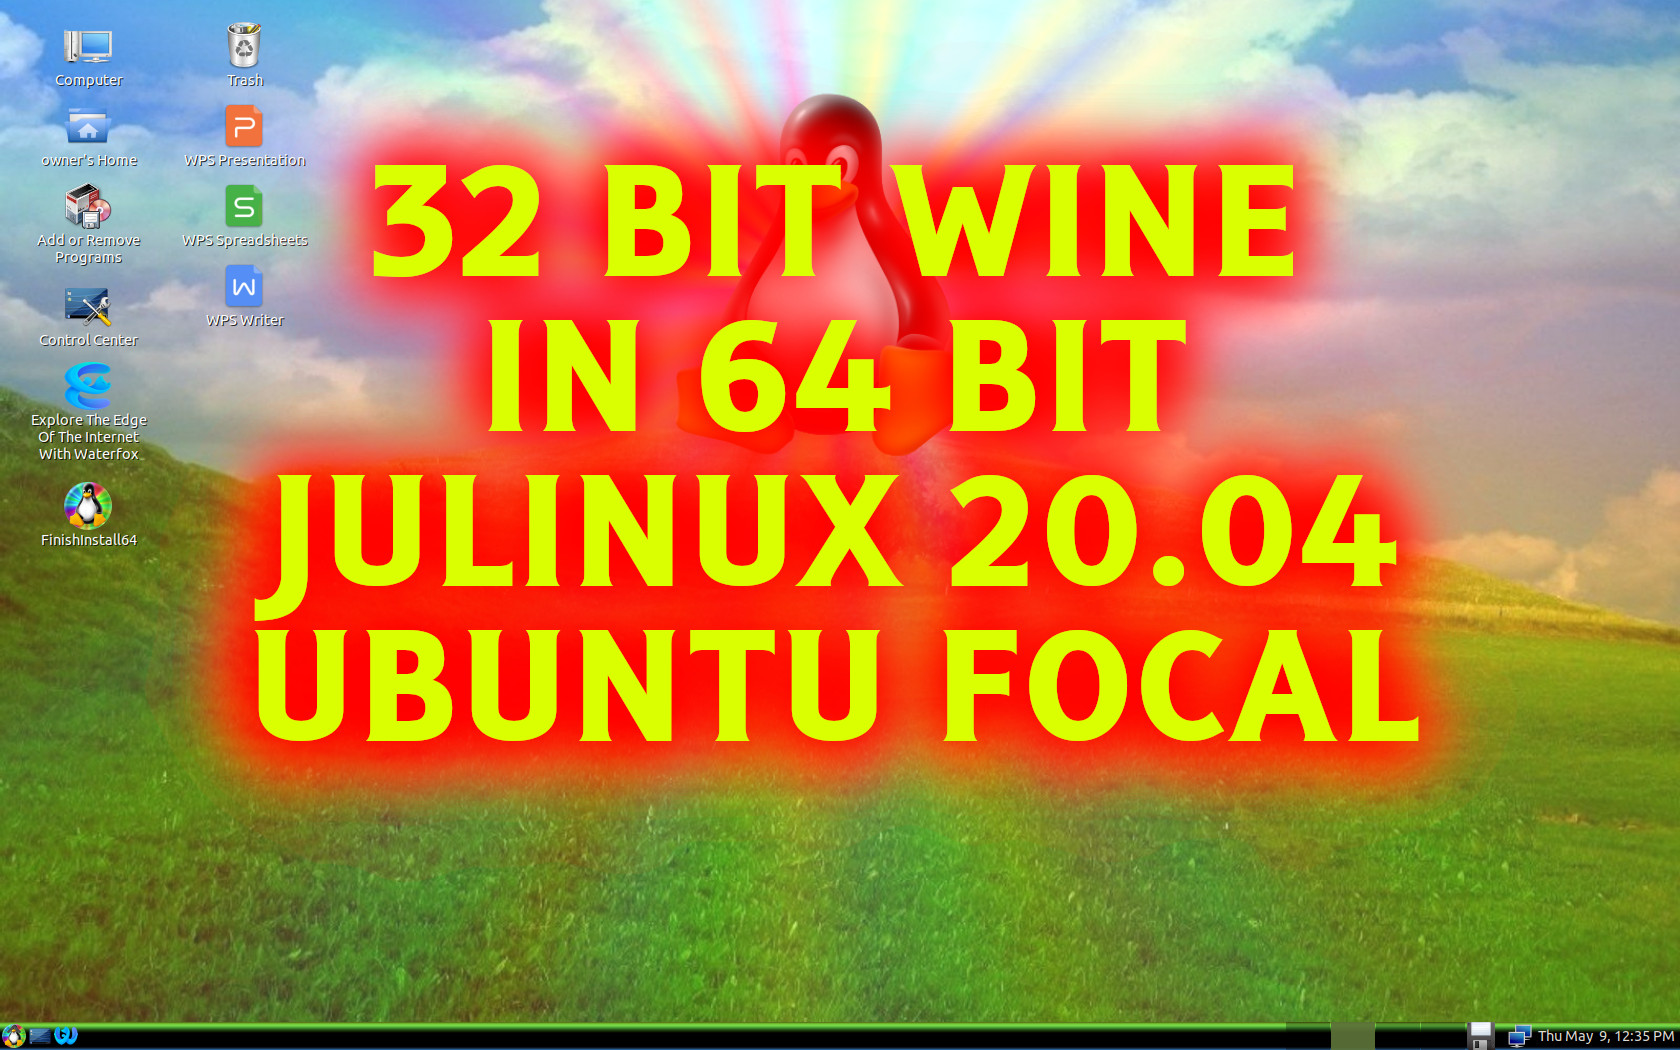 Wine32:i386 On JULinux 20.04.1 Ubuntu Focal